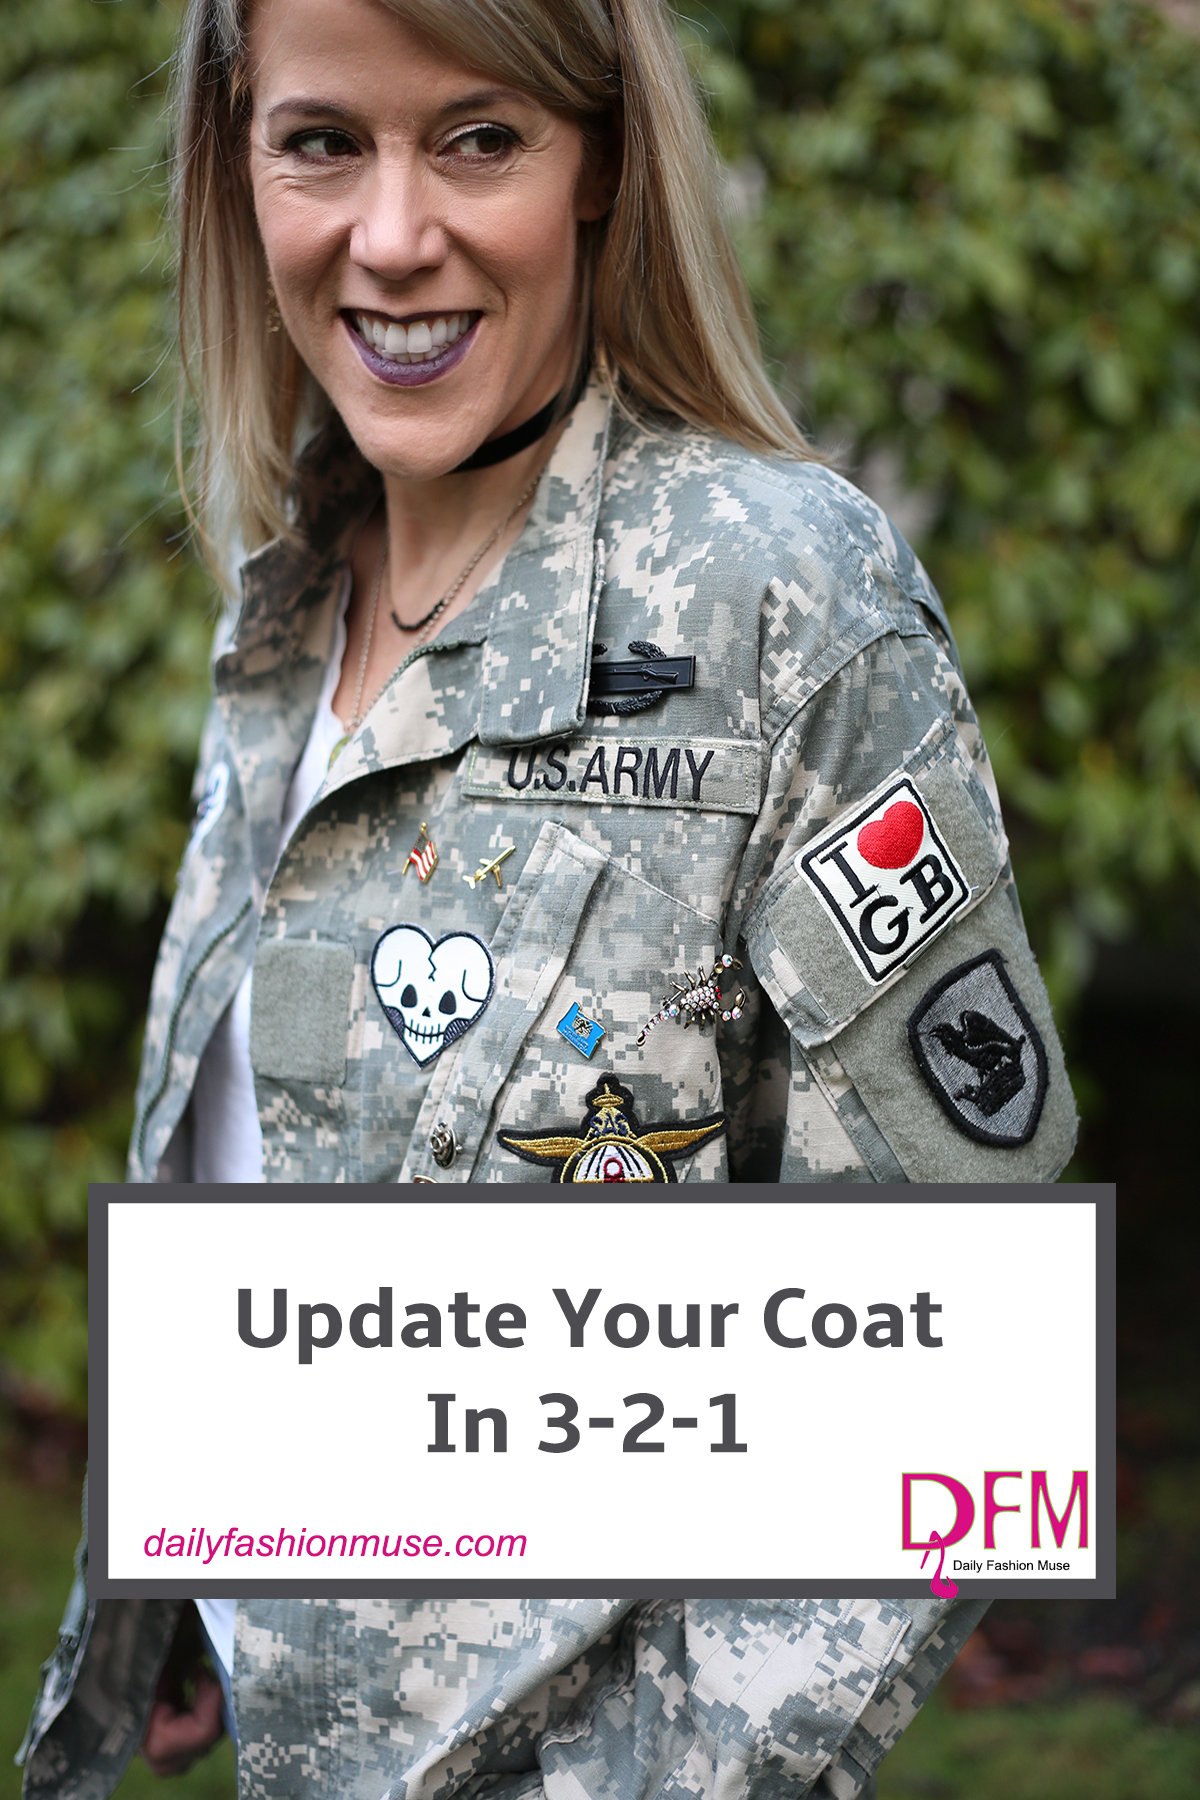 If you are looking to make some quick fashion changes in your wardrobe, they try updating your coat. Click to see my super fast diy.